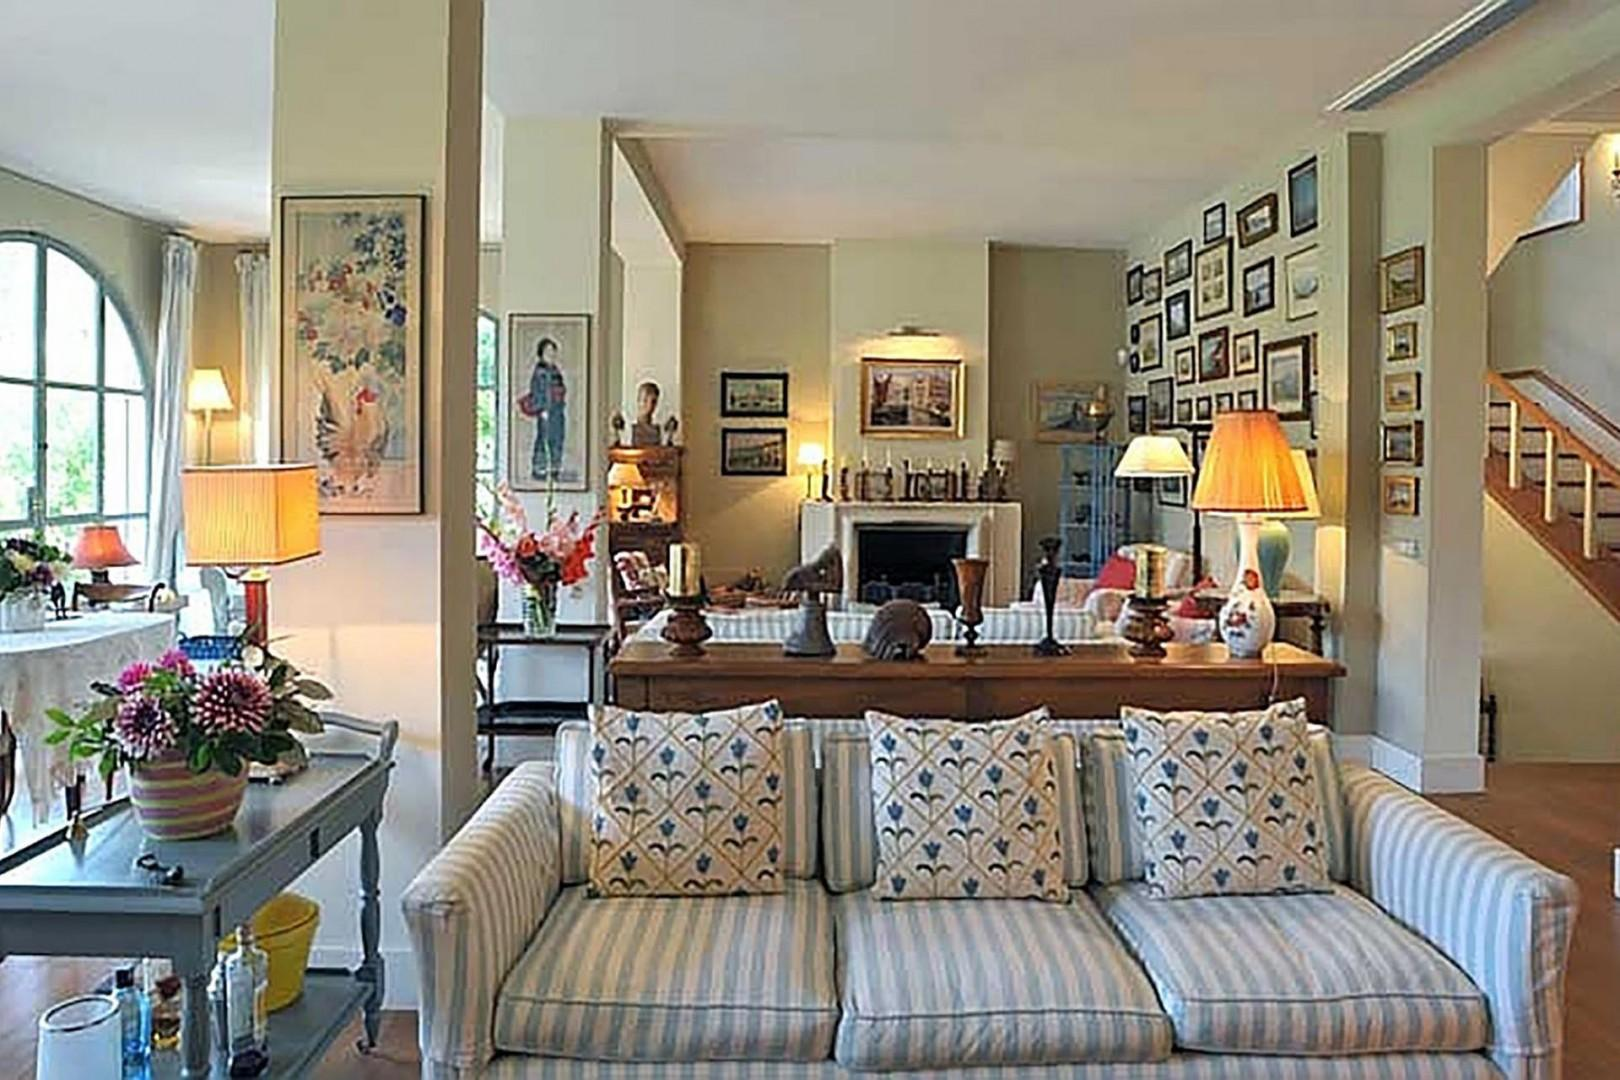 Elegant and large living room with several seating areas.